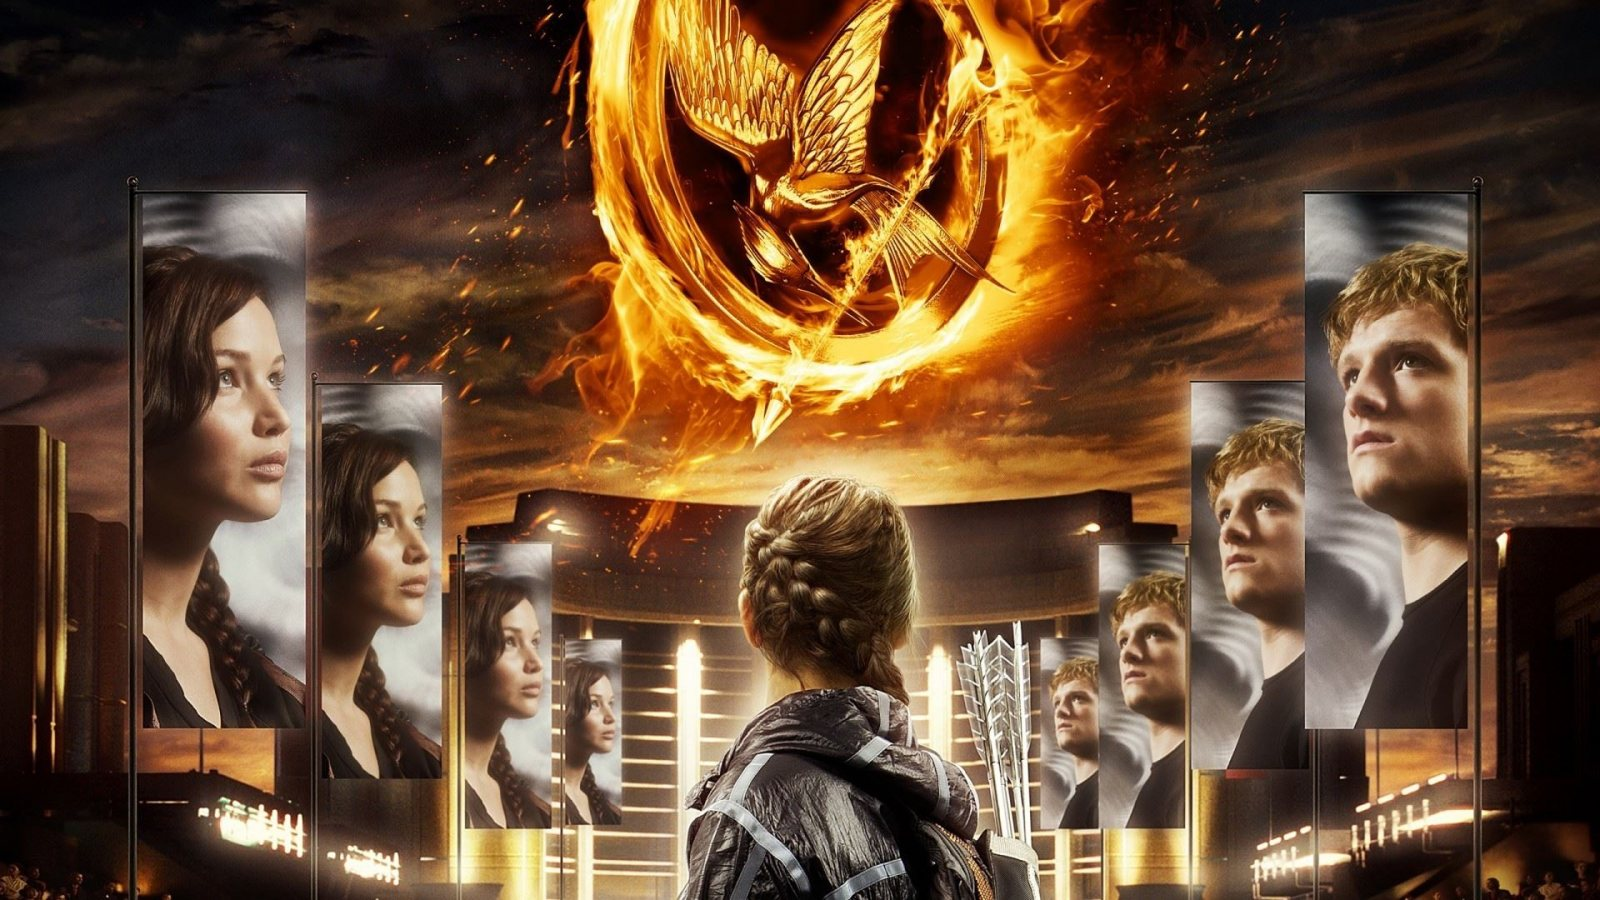 """... Liam Hemsworth, portraying Gale Hawthorne in """"The Hunger Games""""(2012"""